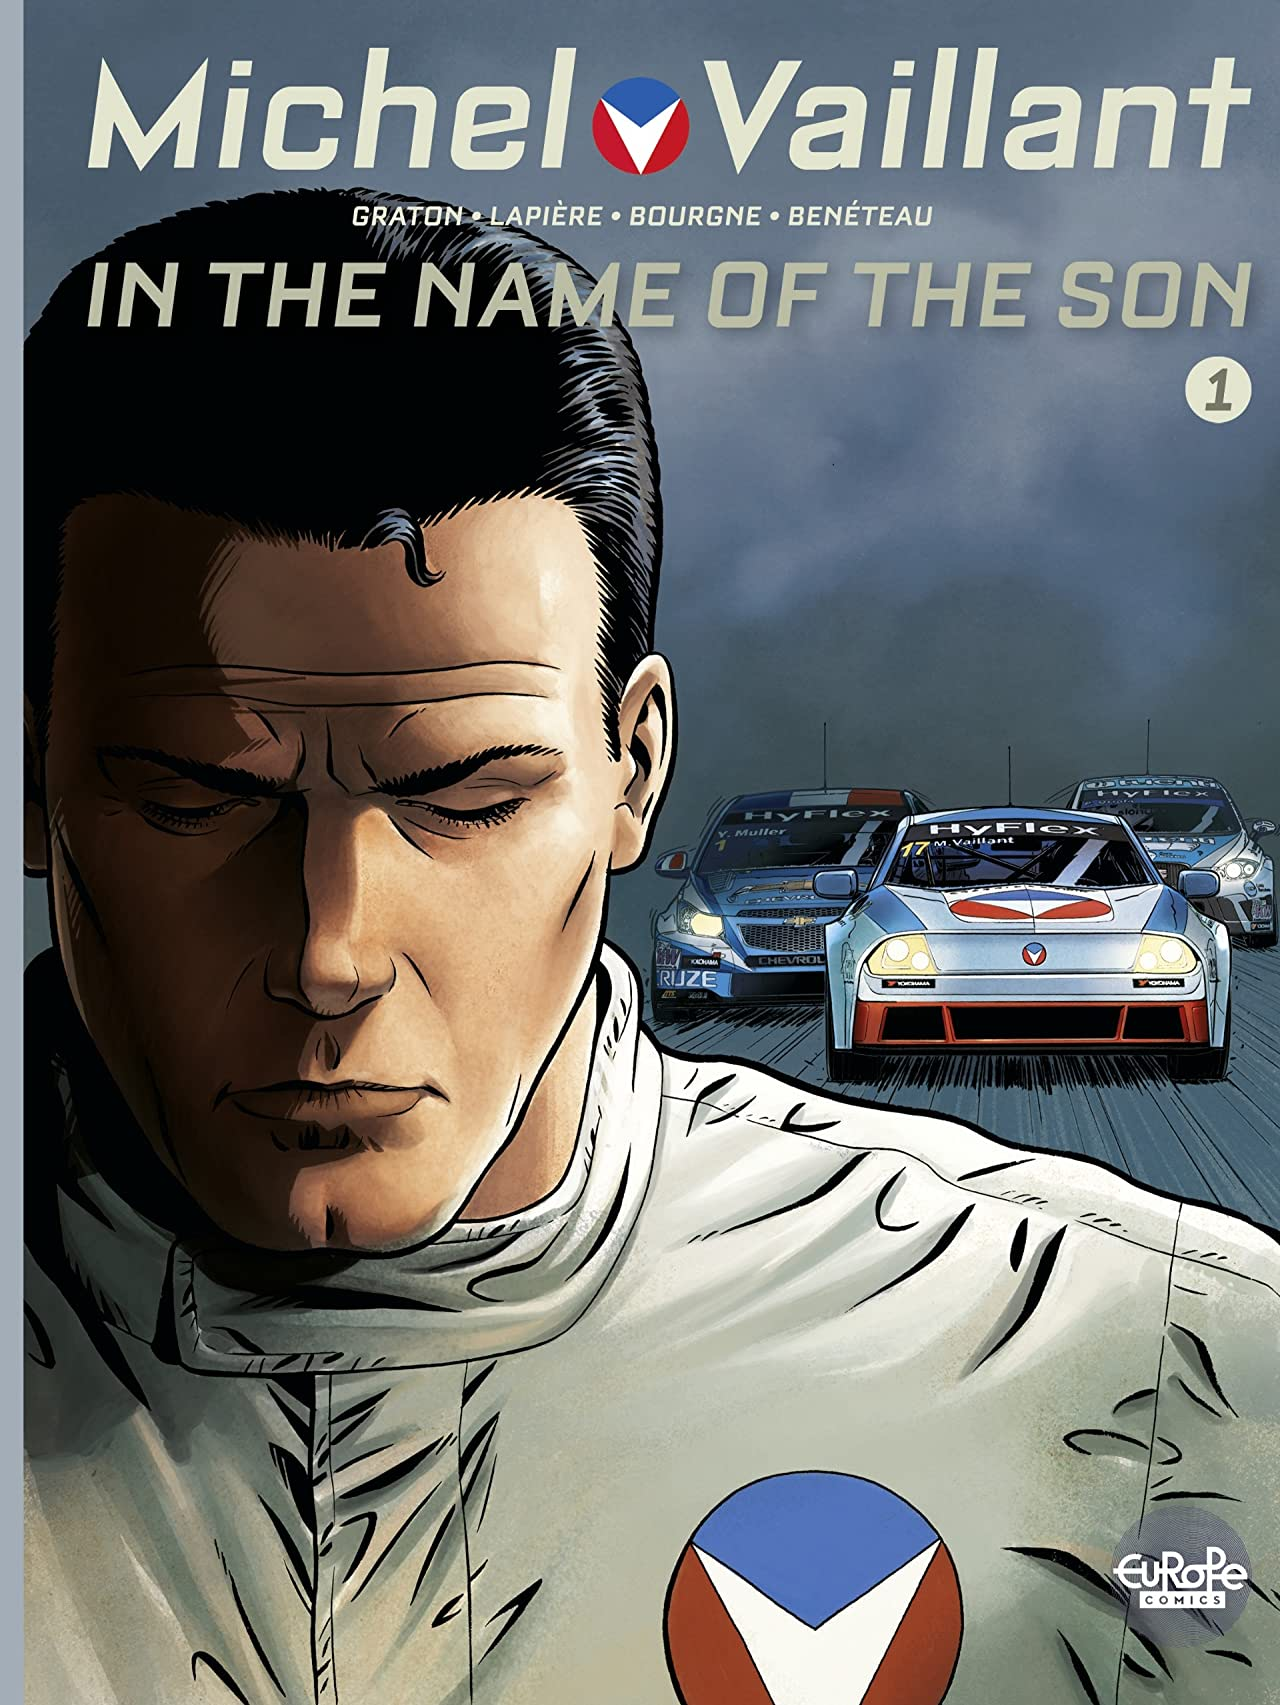 Michel Vaillant Vol. 1: In the Name of the Son